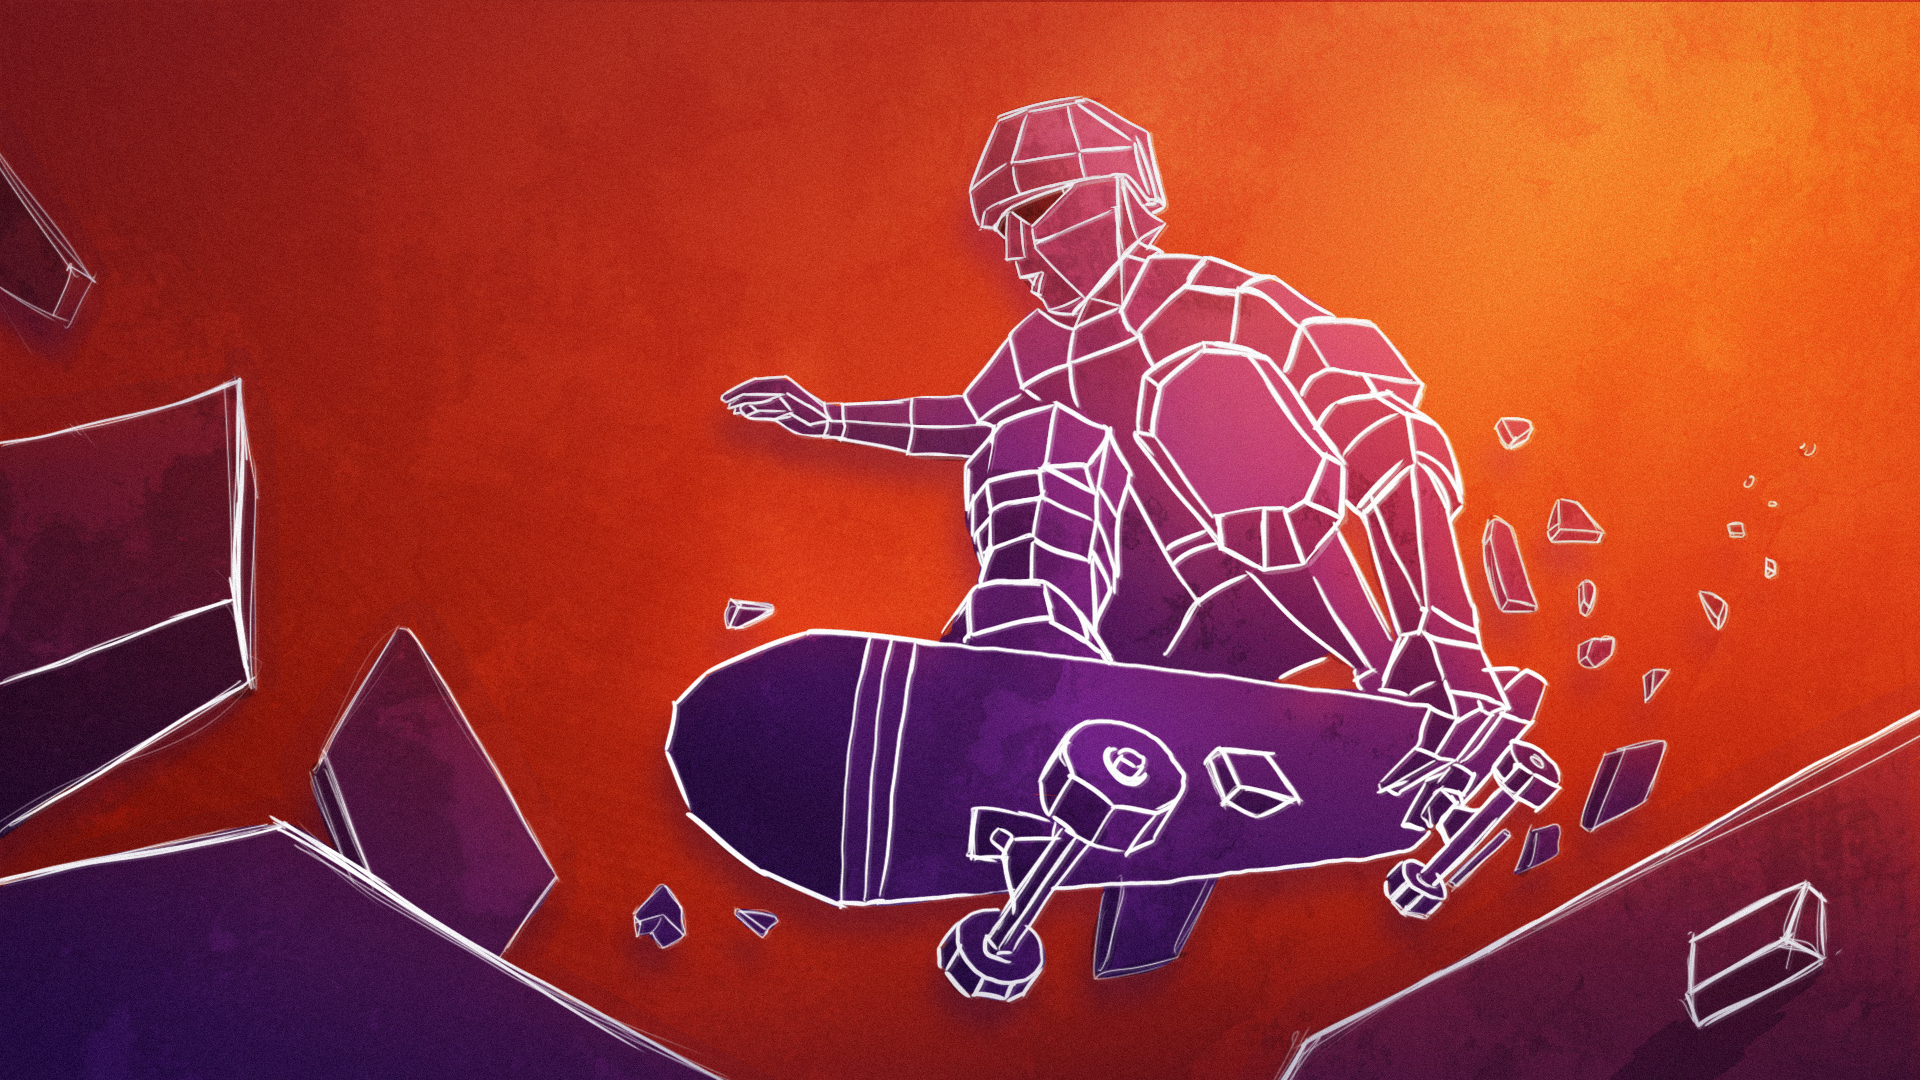 X Games by Clark